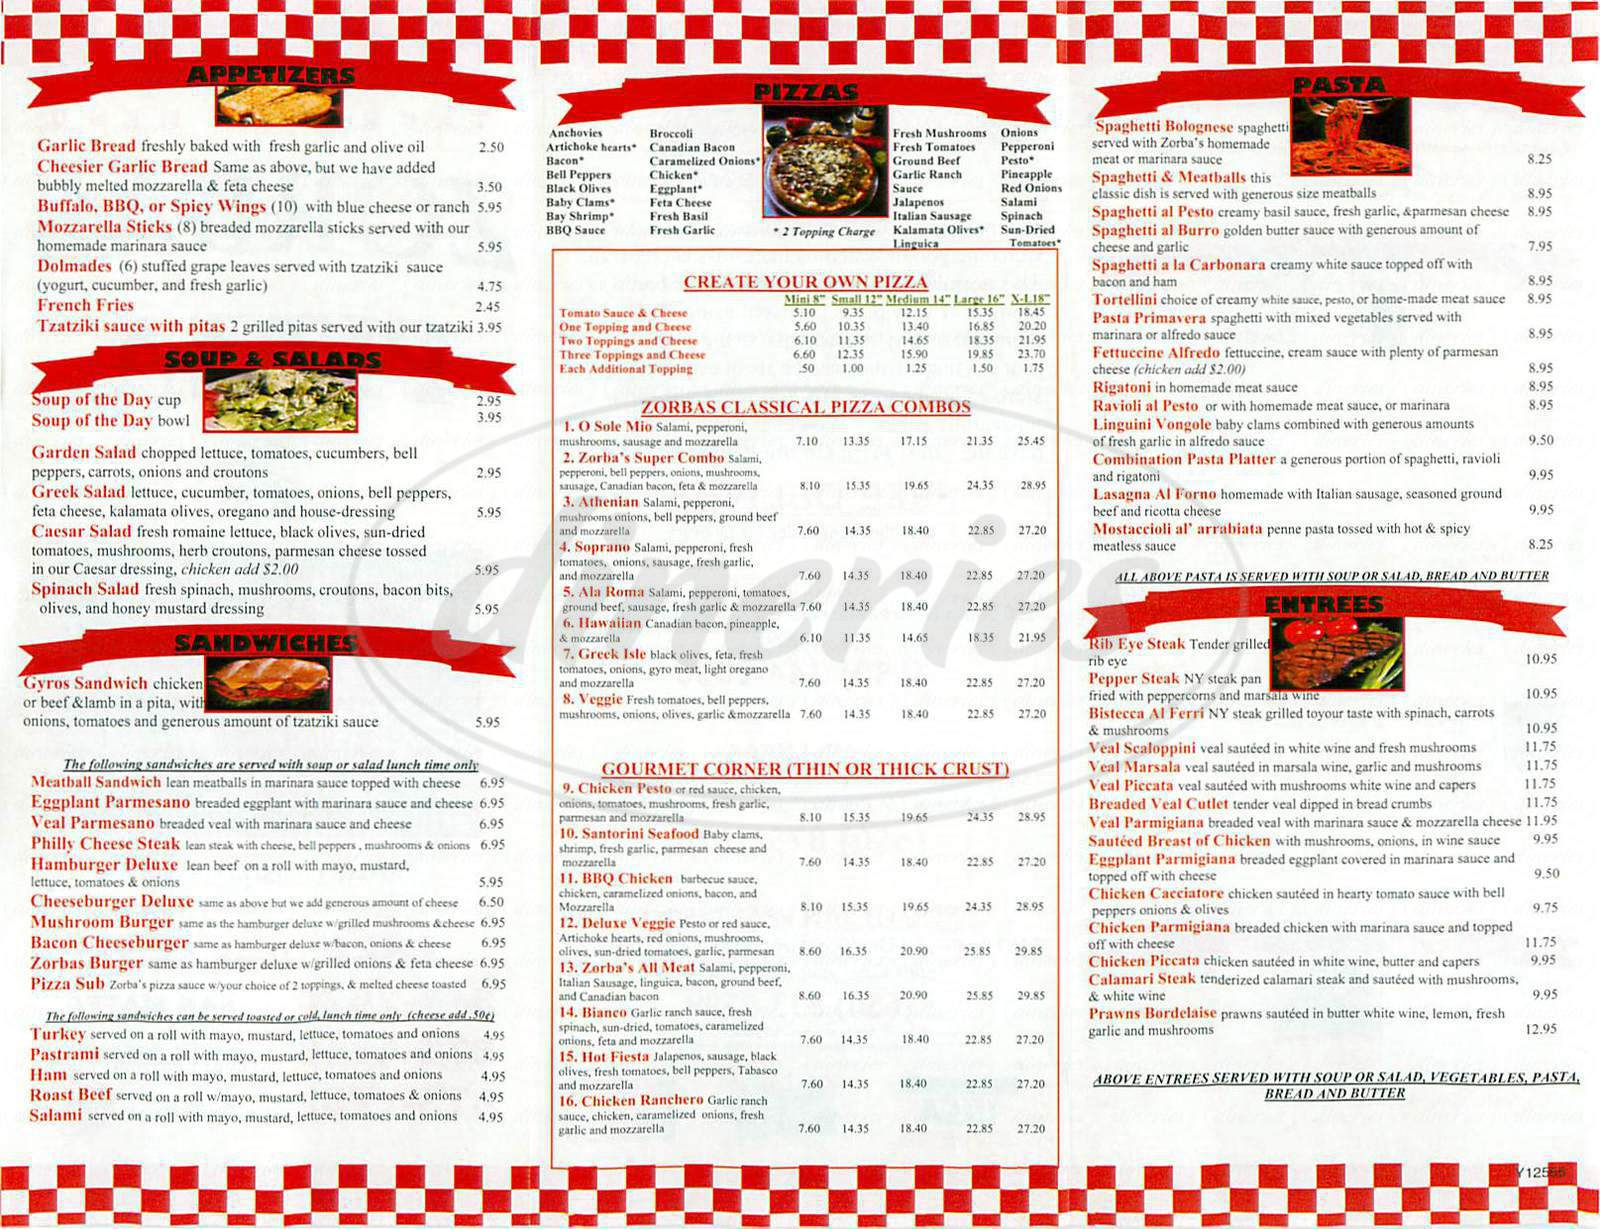 menu for Zorbas Pizza